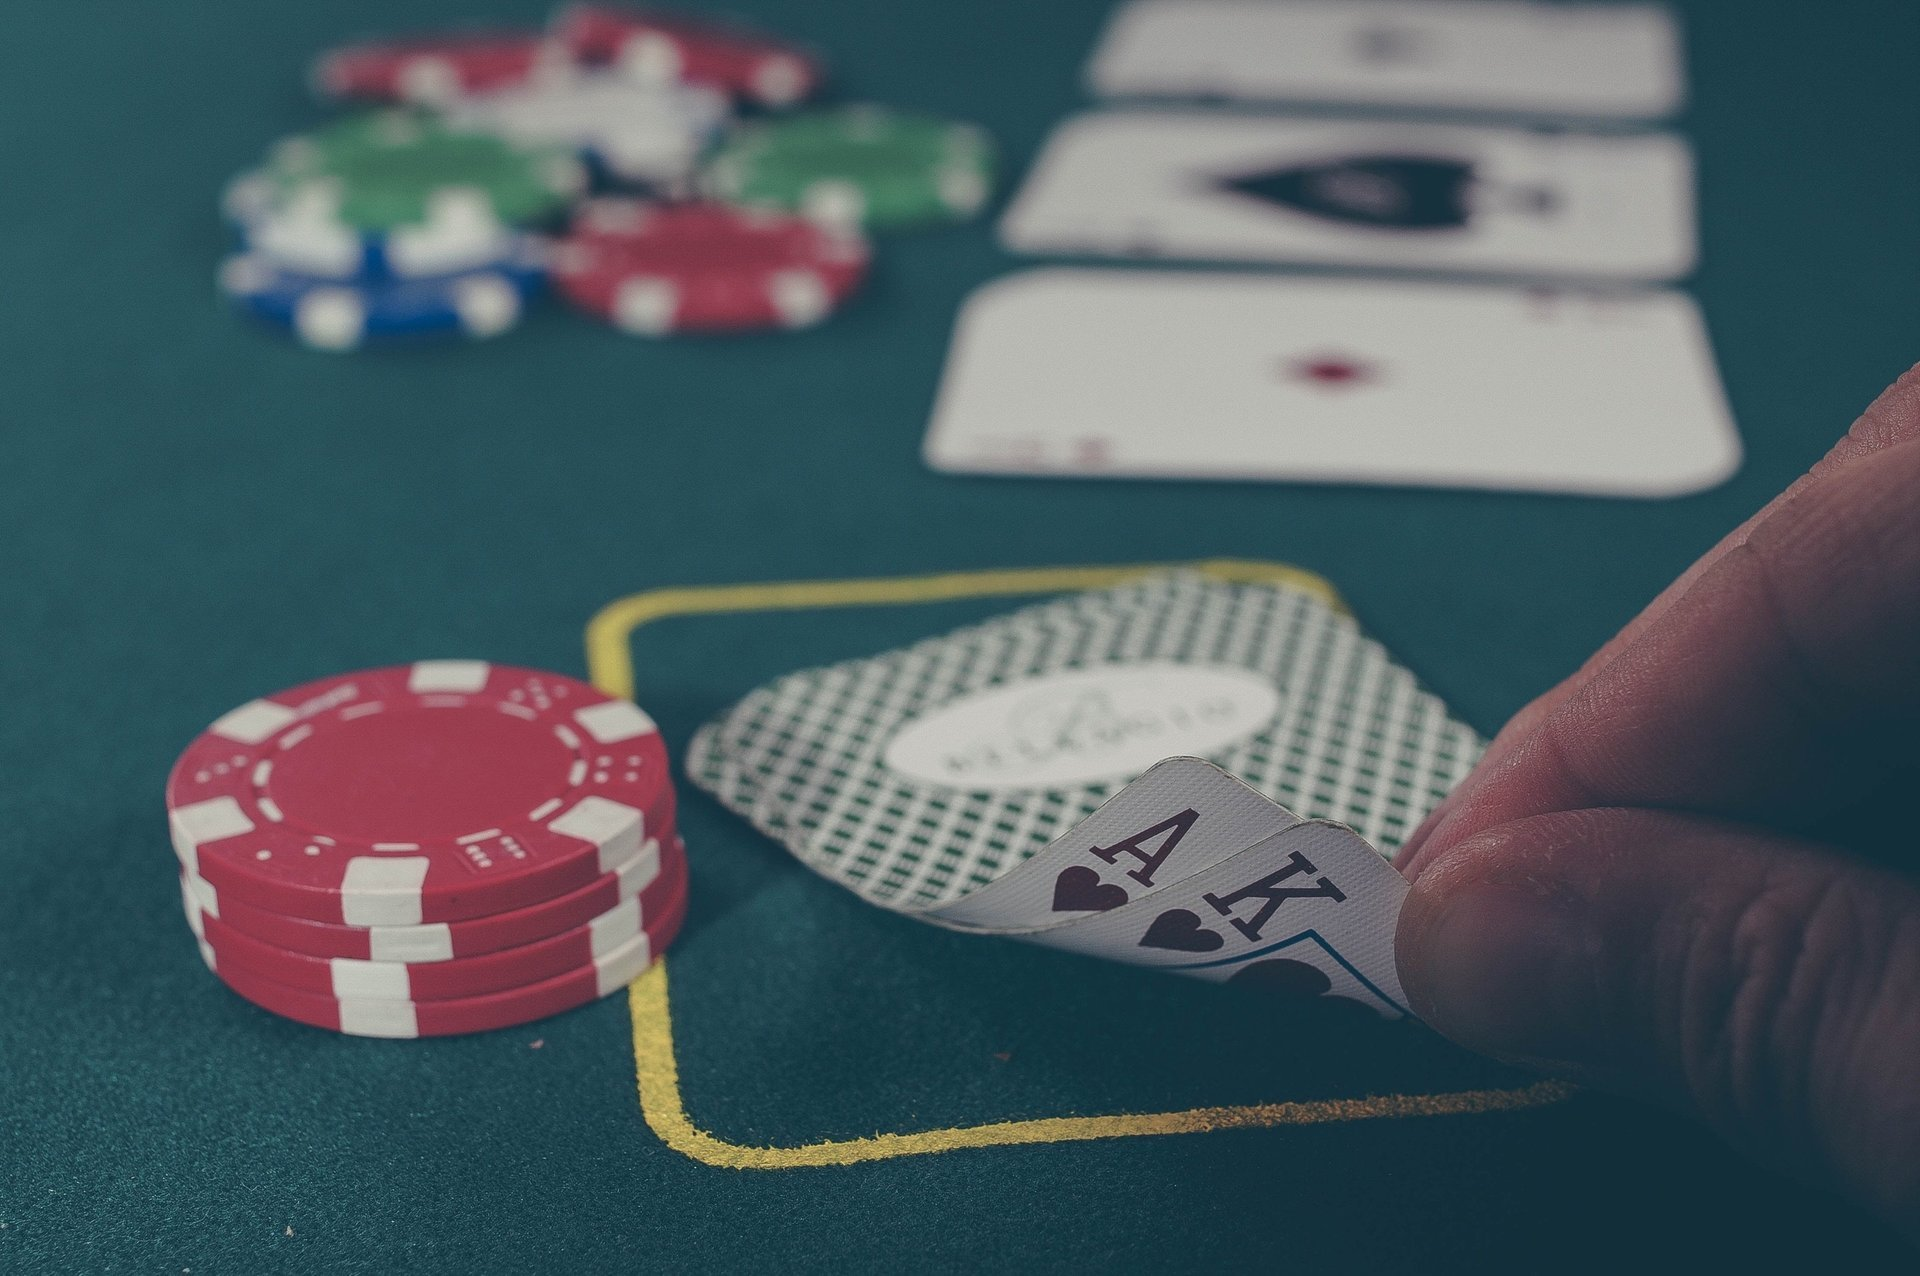 cards and chips on a gambling table and man needing counselling for gambling addiction